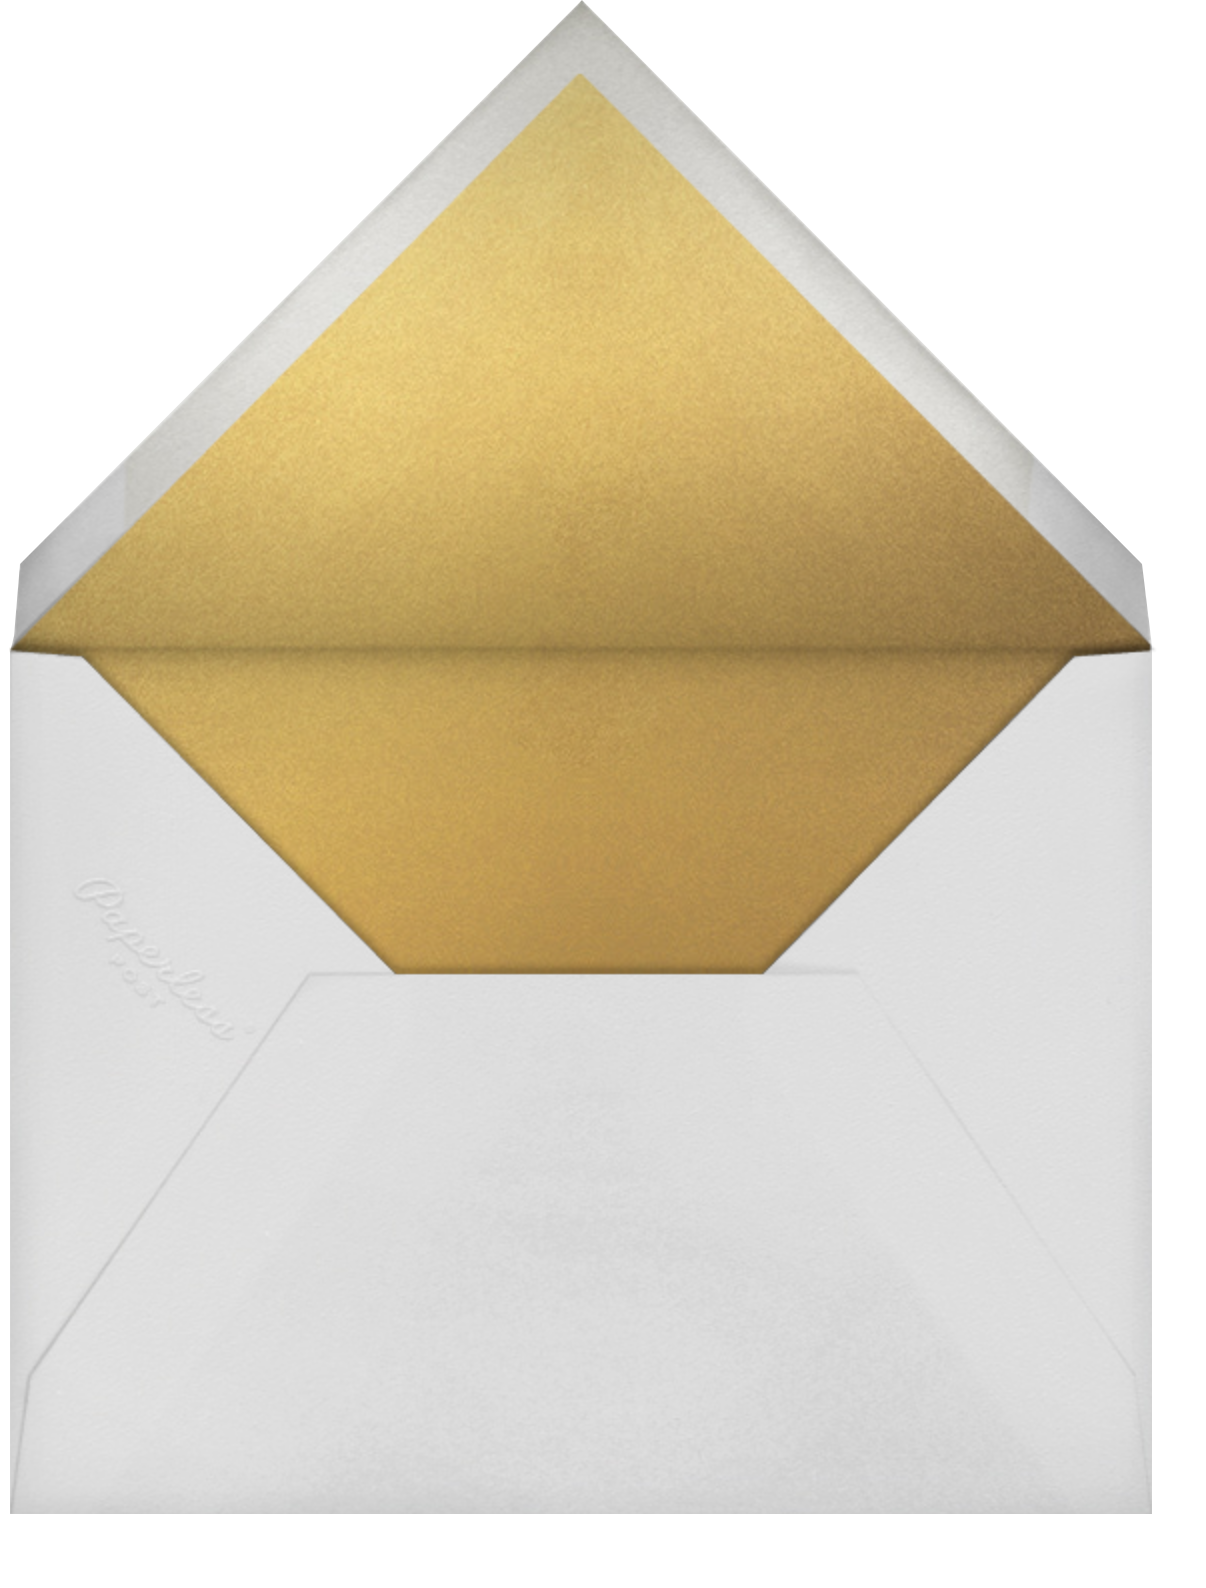 Vermeil (Save the Date) - Vera Wang - Save the date - envelope back